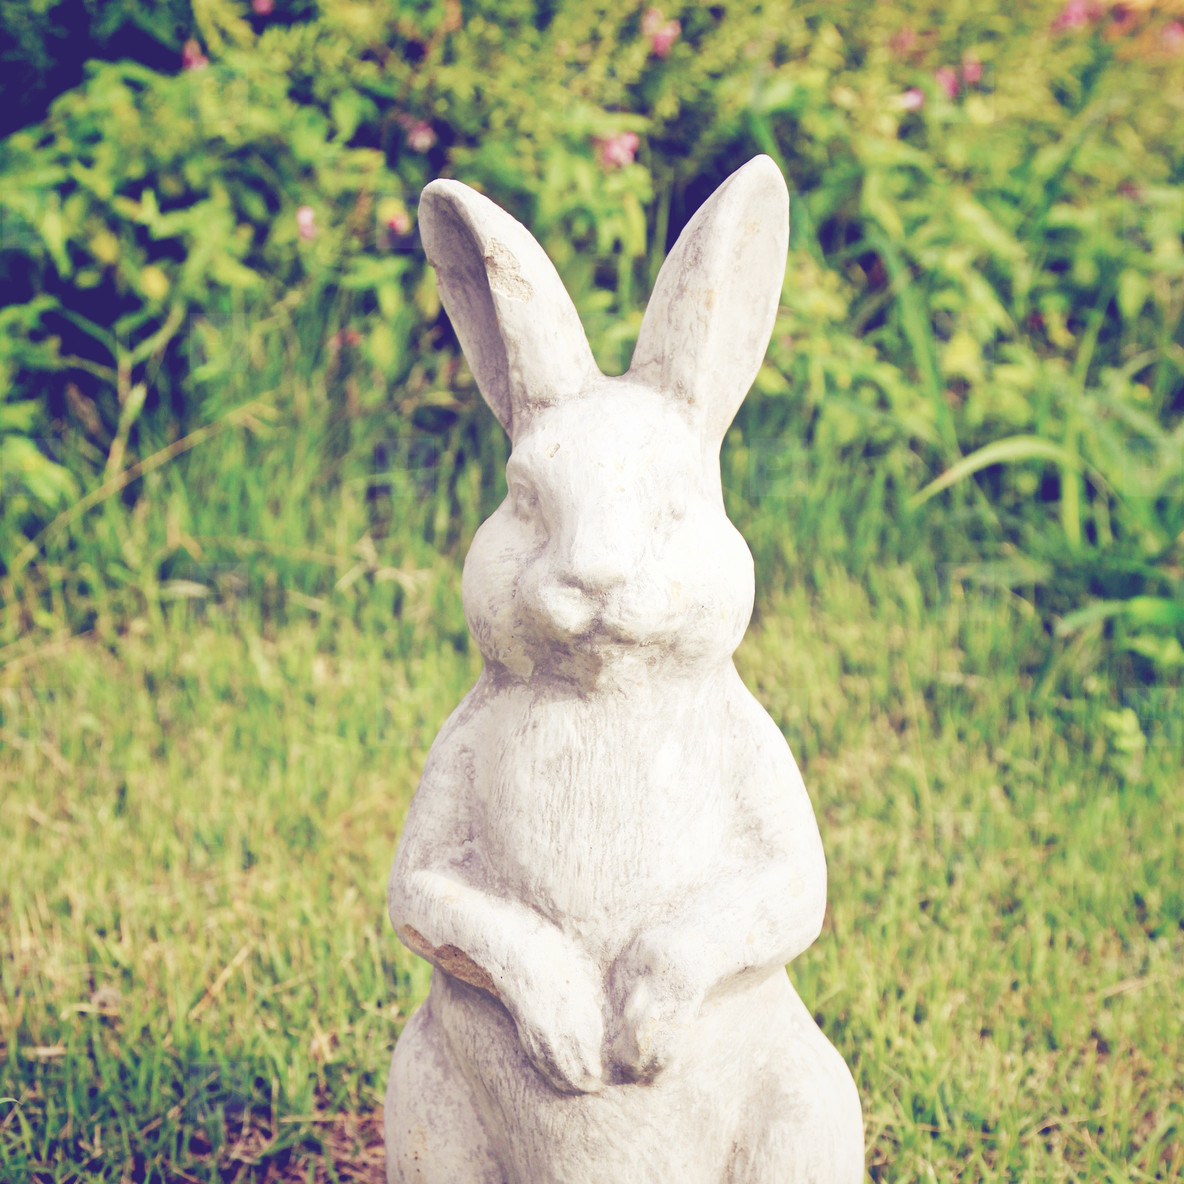 Statue of rabbit in the garden